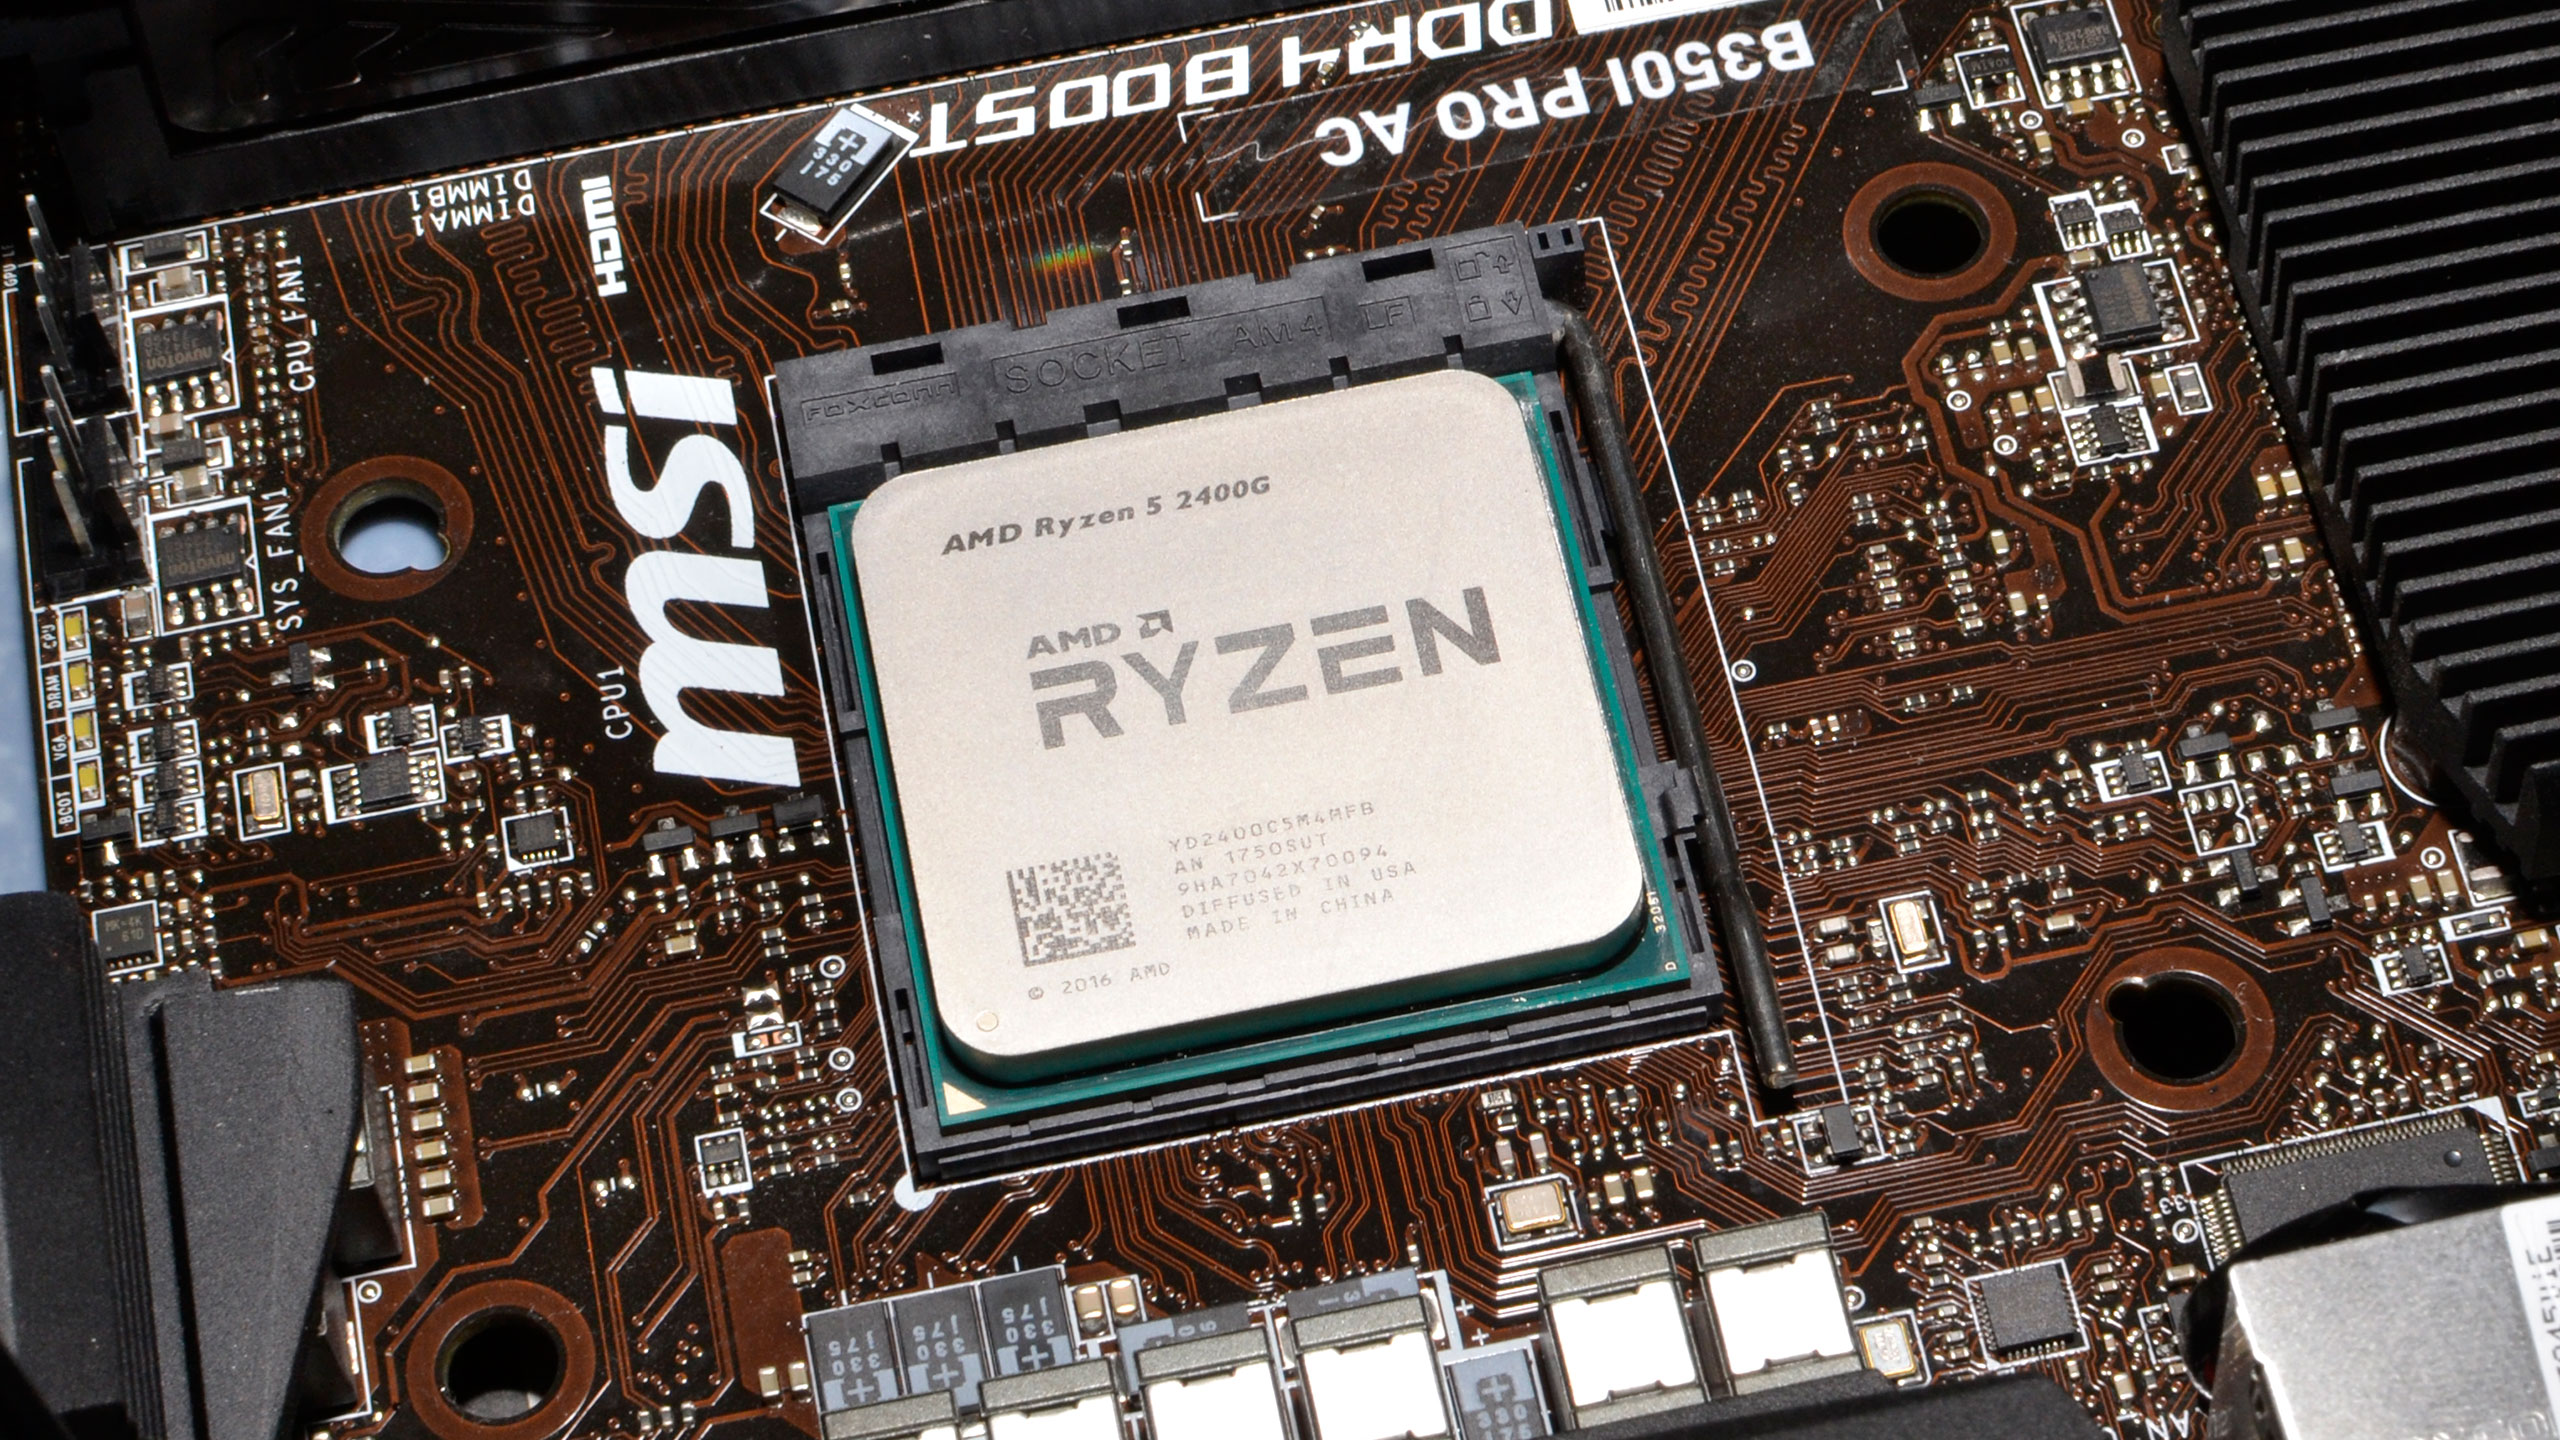 AMD will lend you an older processor to update your BIOS to support